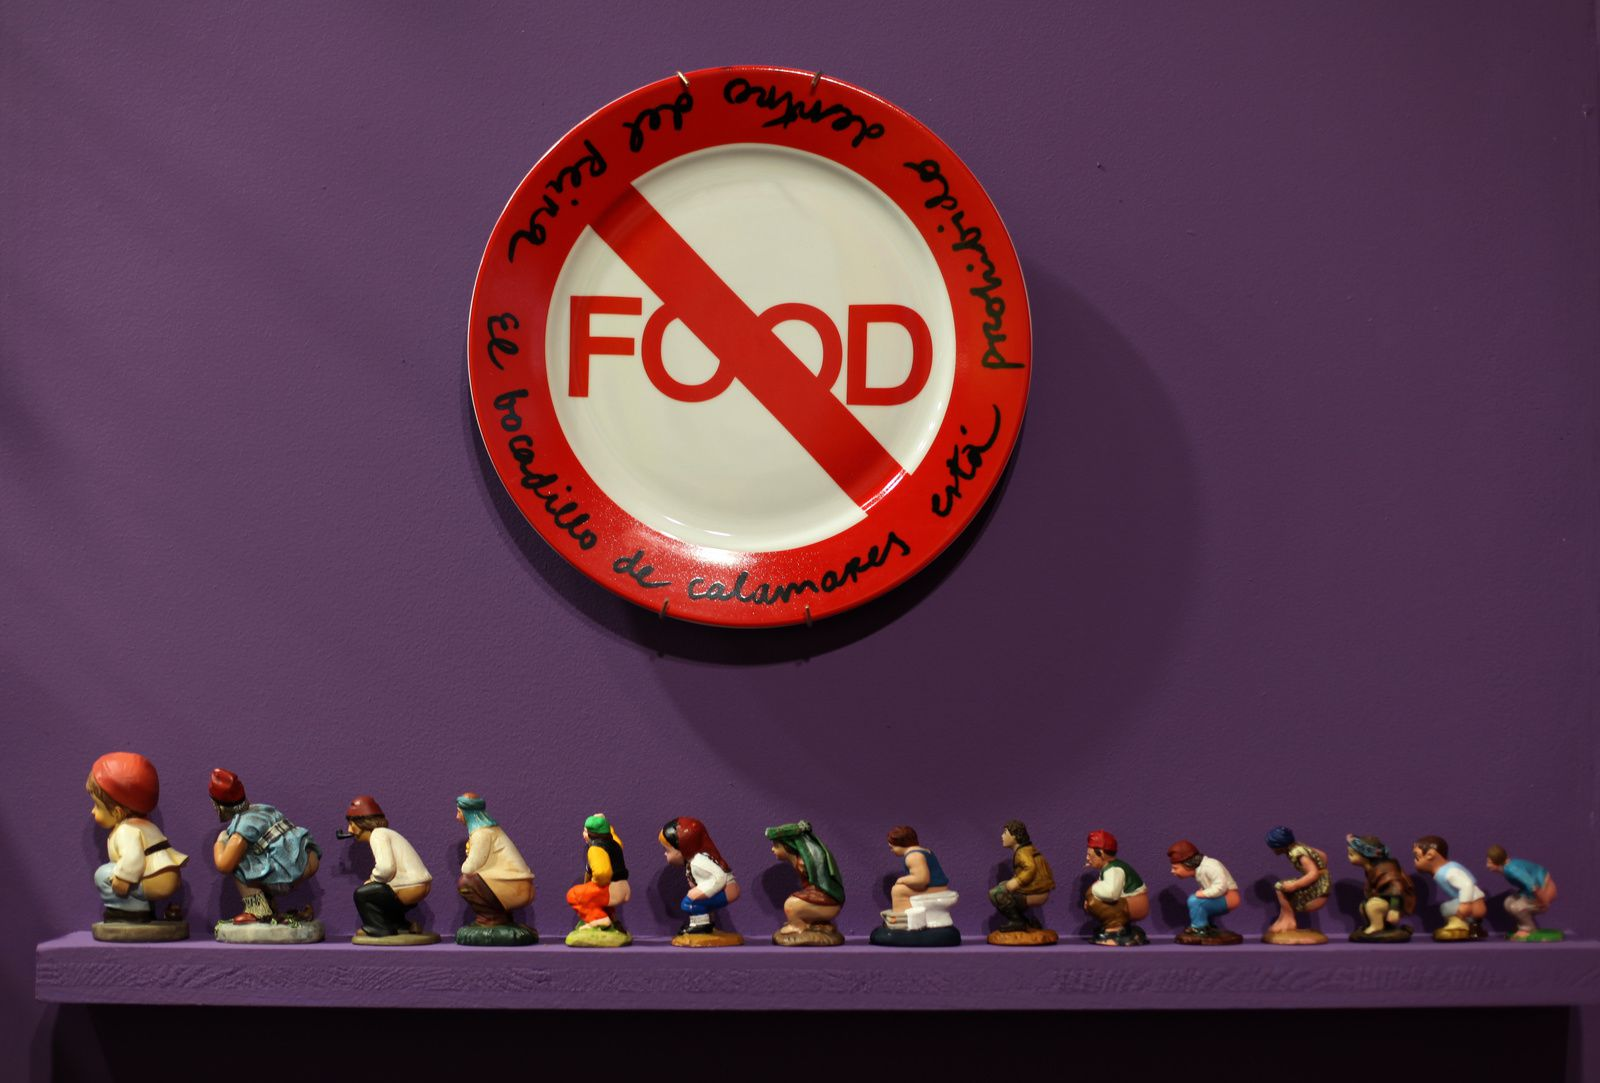 """FOOD"", 2010 de MIRALDA et CAGANERS (Santon Catalans)"" Collection Victoire et Hervé DI ROSA © Photo Éric Simon"